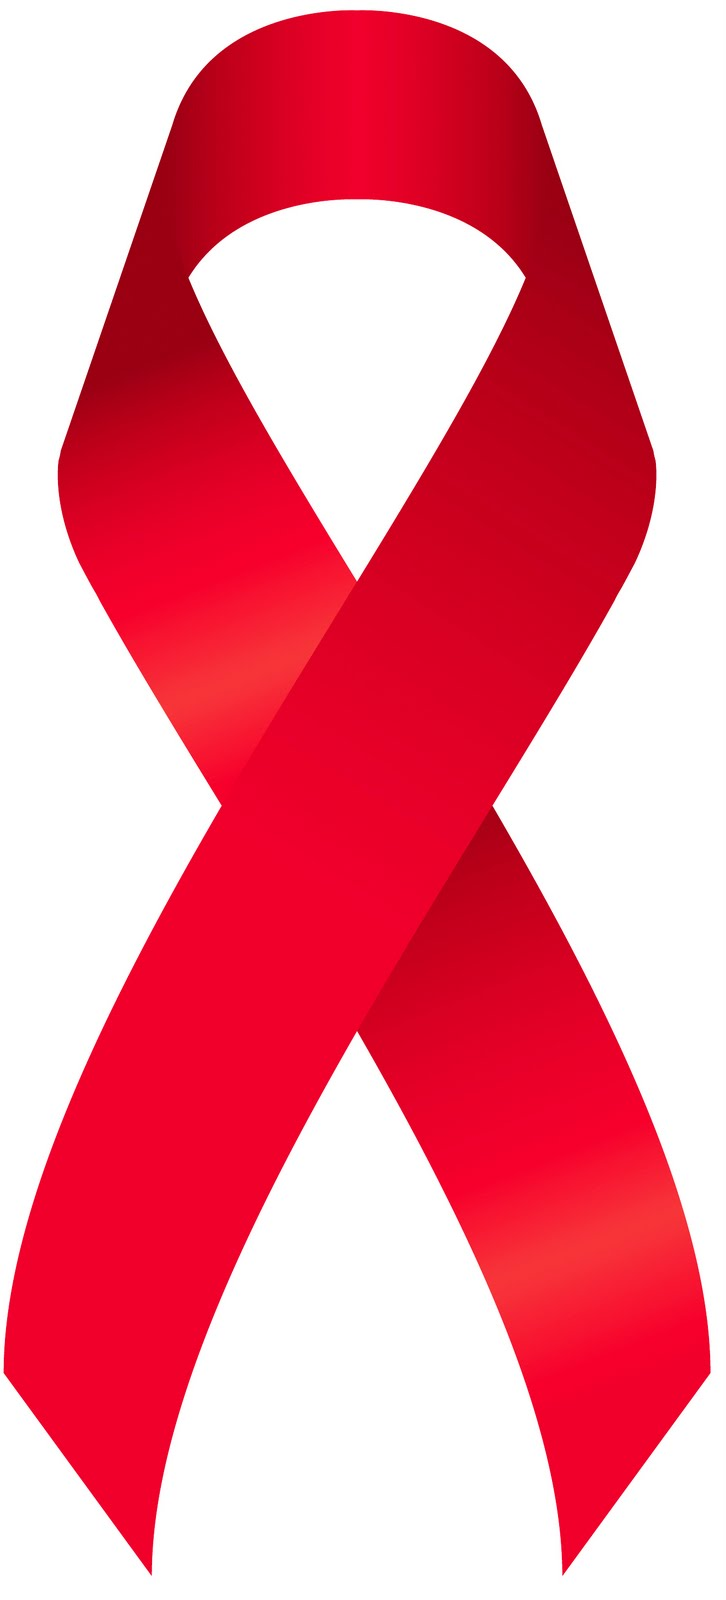 Free Red Ribbon Clipart, Download Free Clip Art, Free Clip.